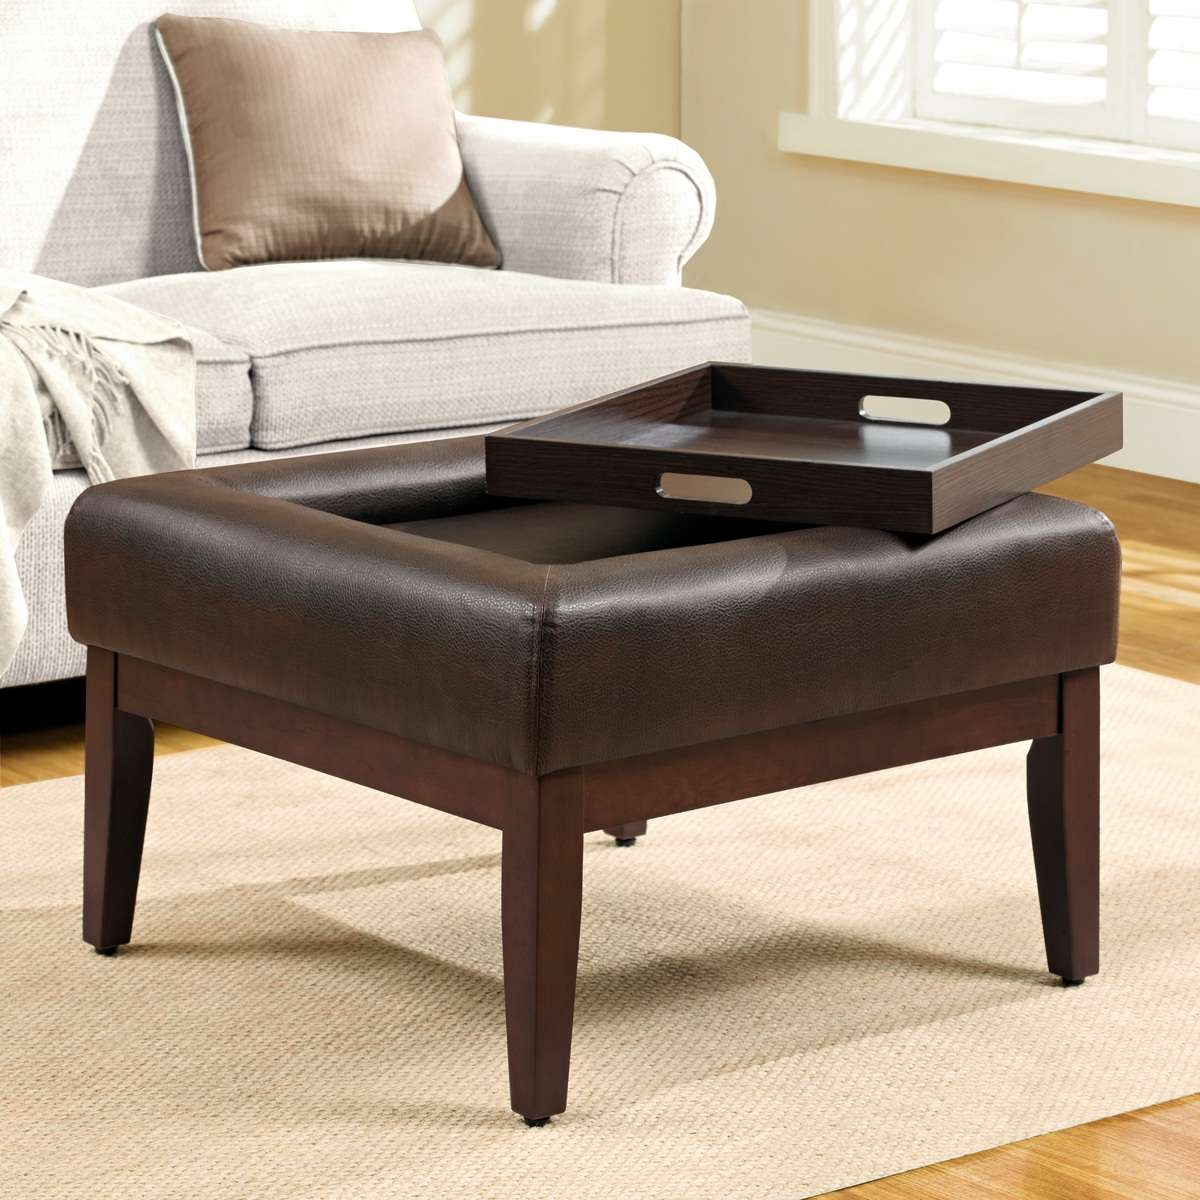 Popular Brown Leather Ottoman Coffee Tables With Storages With Regard To Simple Black Ottoman Coffee Table Designs With Storage – Laredoreads (View 16 of 20)